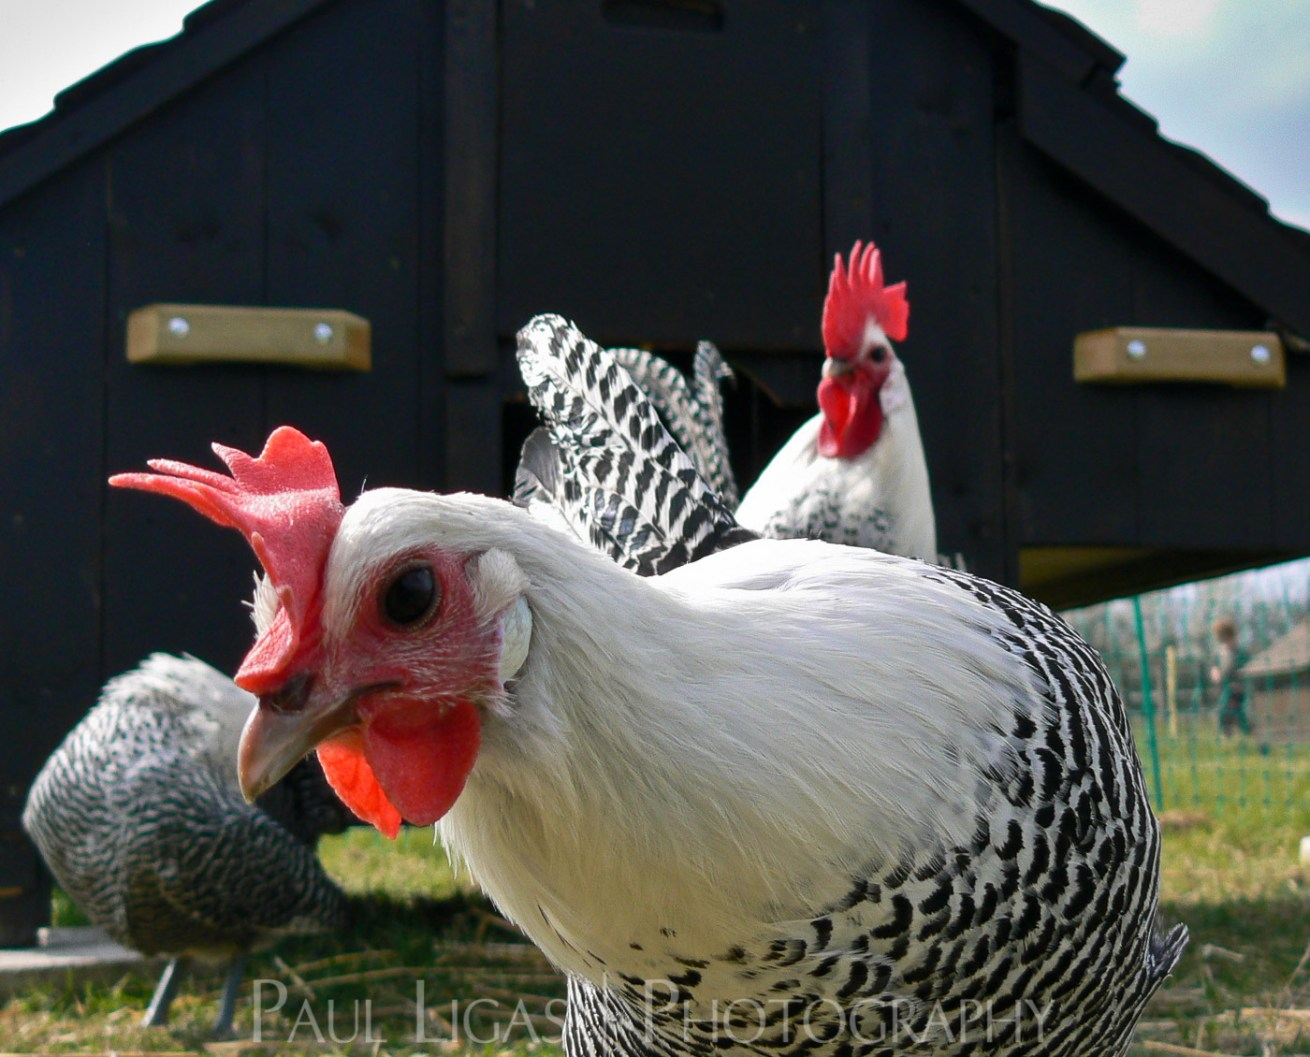 Mill House Farm agriculture photographer photography farming chicken herefordshire 0835